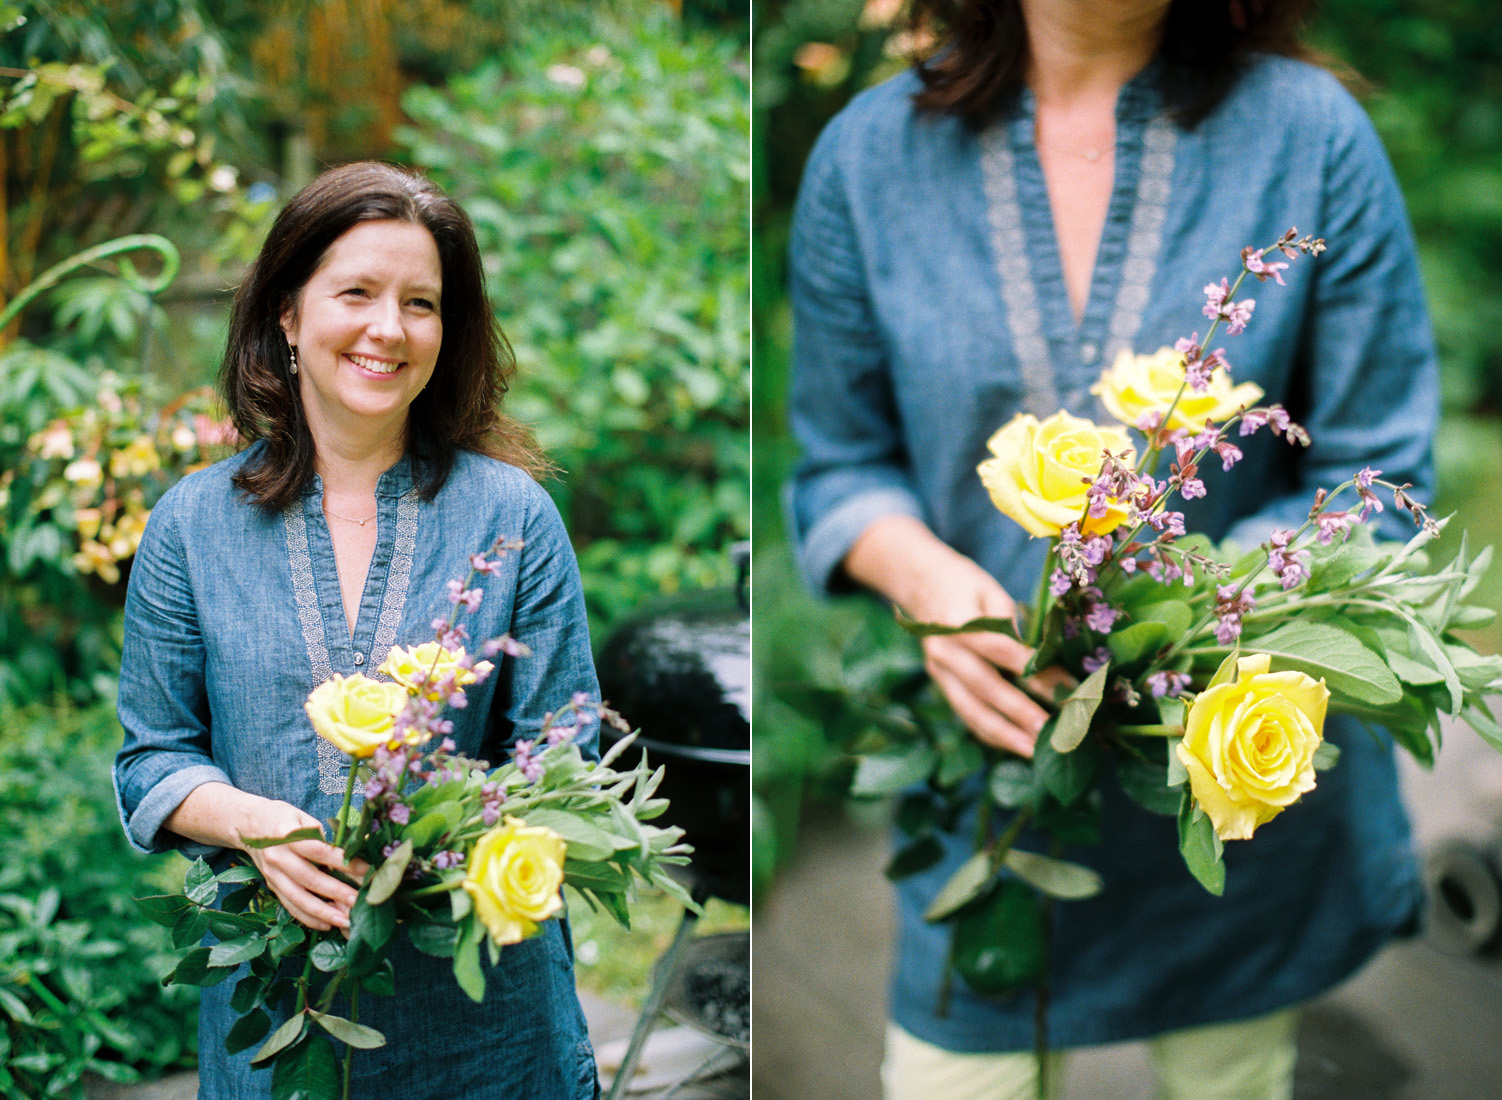 keita horn of smashing petals seattle wedding florist portrait photography.jpg